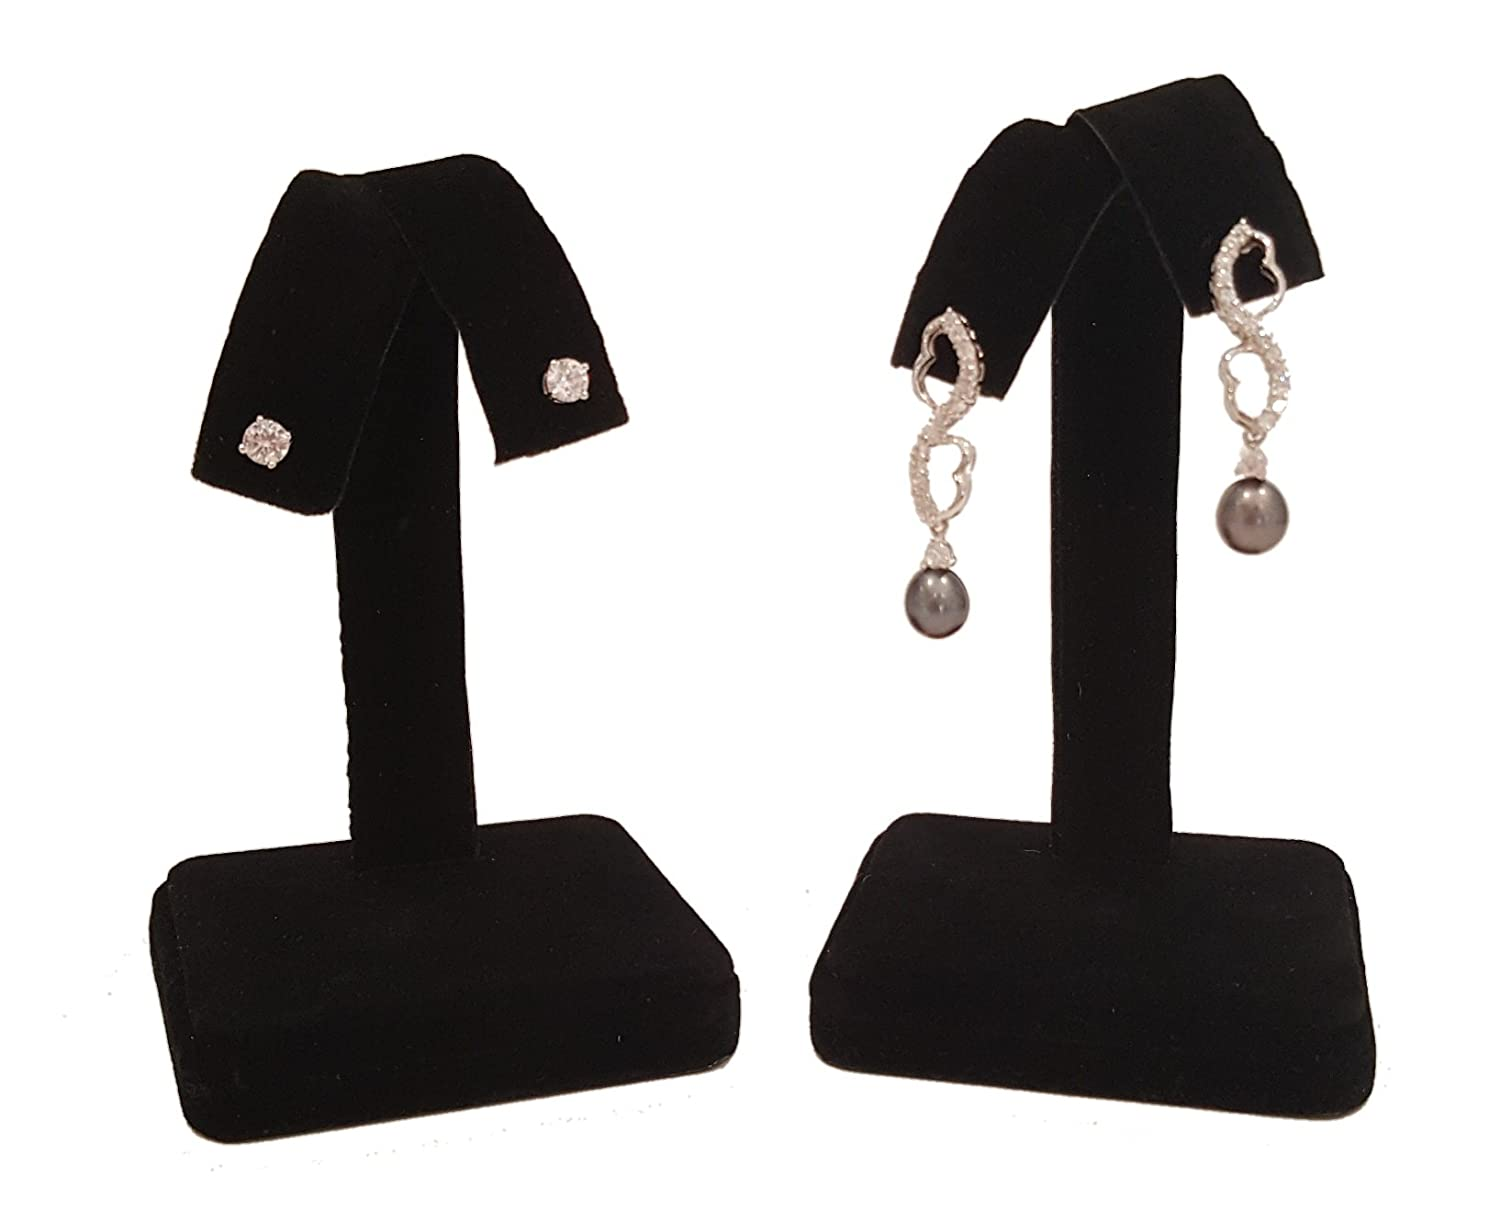 White Faux Leather Earring Tree Display 4.25H Fan-Out Jewelry Holder Stand N/'ice Packaging Nice Packaging 6 Pieces